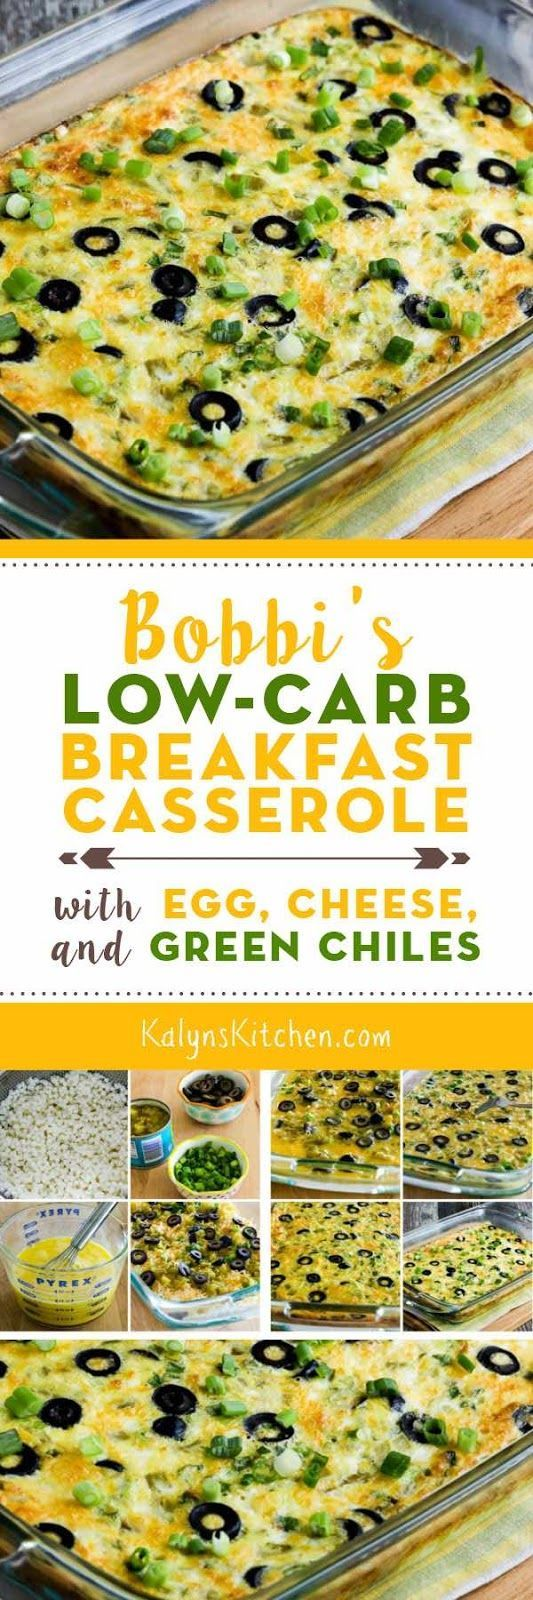 Bobbi's Low-Carb Breakfast Casserole with Egg, Cheese, and Green Chiles was adapted slightly from a recipe I got from my step-sister Bobbi, and the addition of cottage cheese makes this especially high in protein. It's also low-carb, Keto, low-glycemic, gluten-free, meatless, and South Beach Diet friendly. And this is delicious; I like it with my favorite Greek Tabasco Sauce! [from KalynsKitchen.com] #LowCarbBreakfastCasserole #LowCarbHighProteinBreakfastCasserole #EggGreenChileCasserole